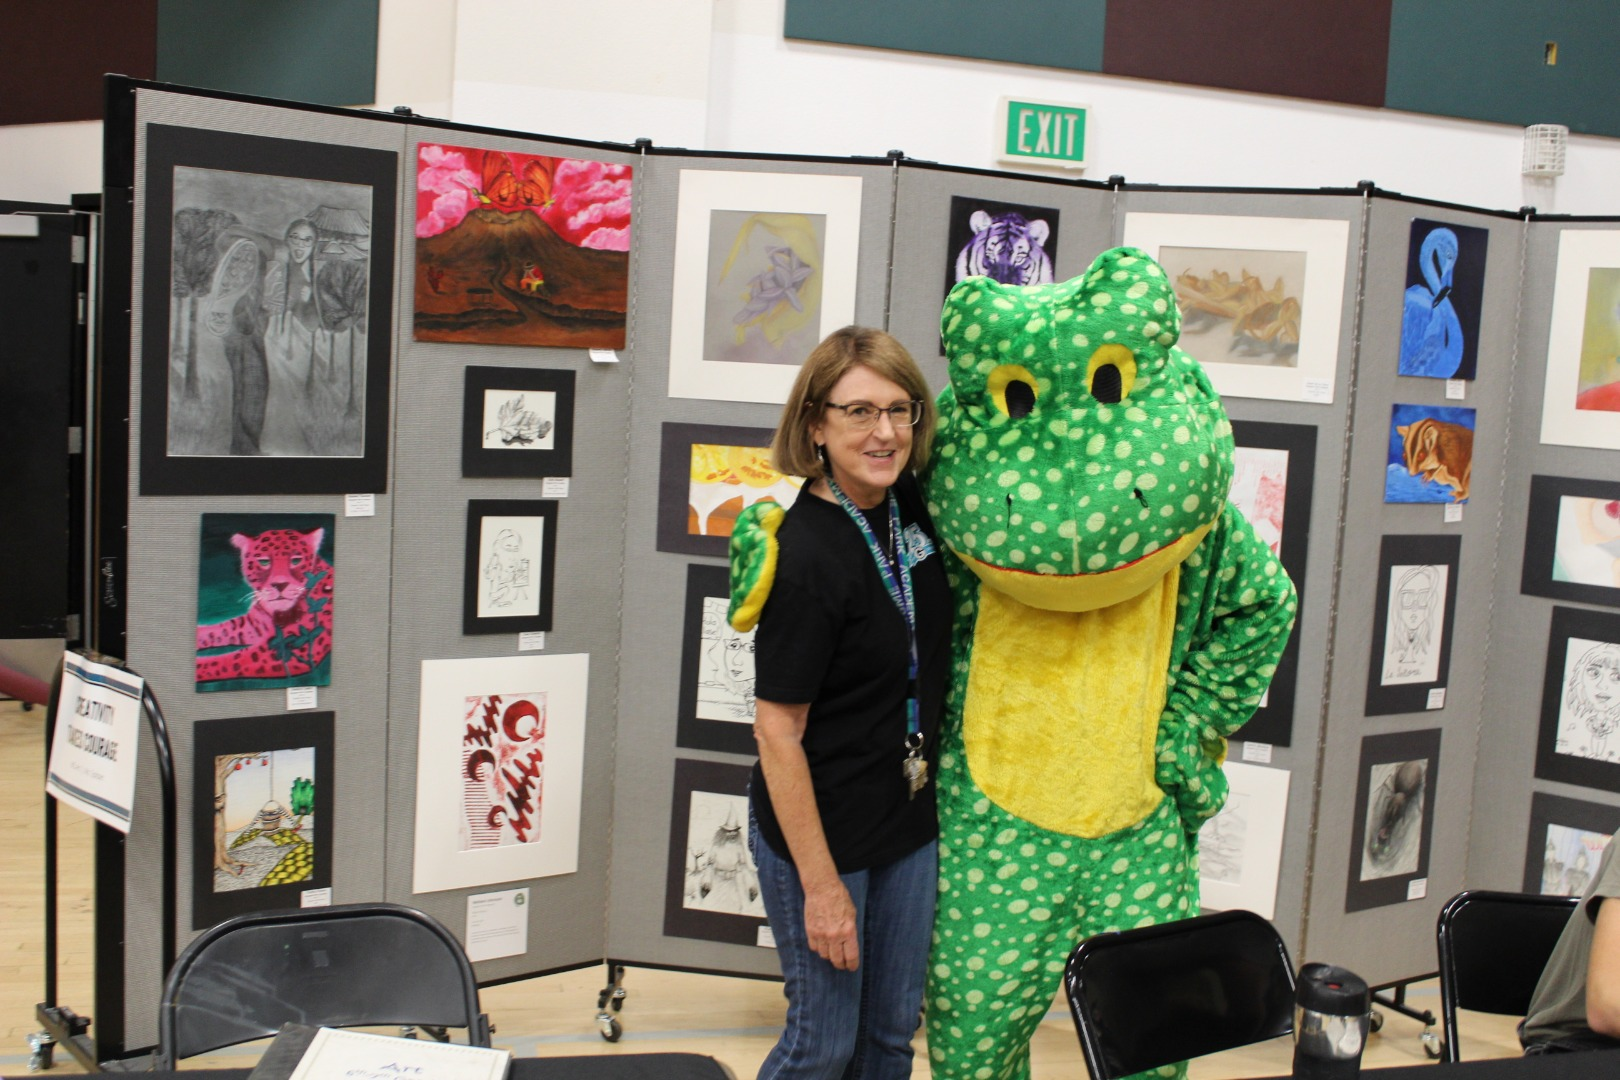 Teacher standing with the frog mascot in front of student art display